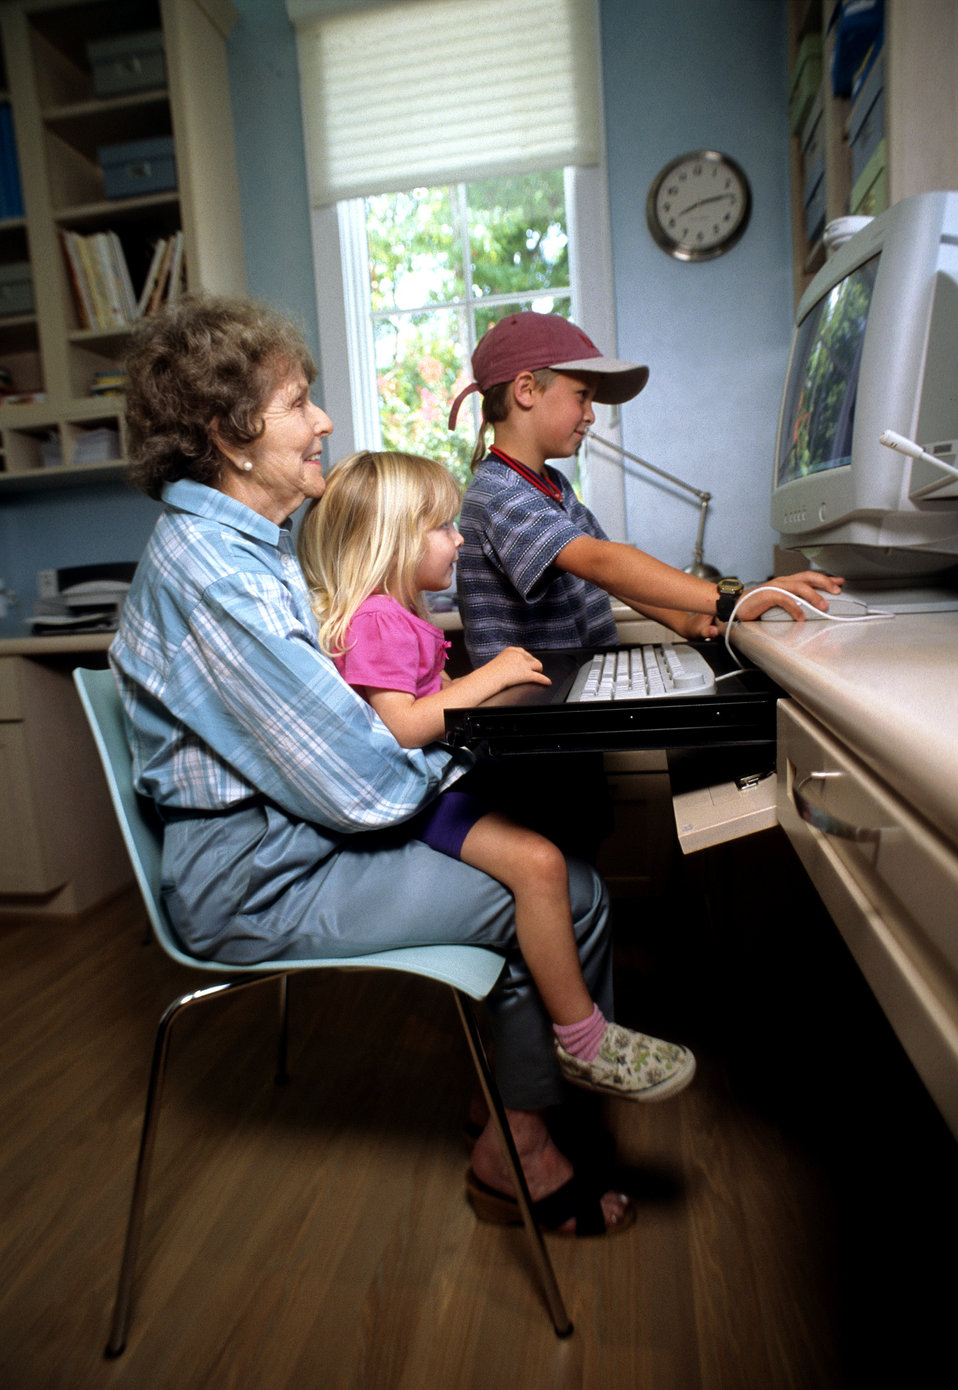 This 2000 image depicted an elderly woman seated at a home computer workstation, while her two grandchildren, a young girl and boy play on t